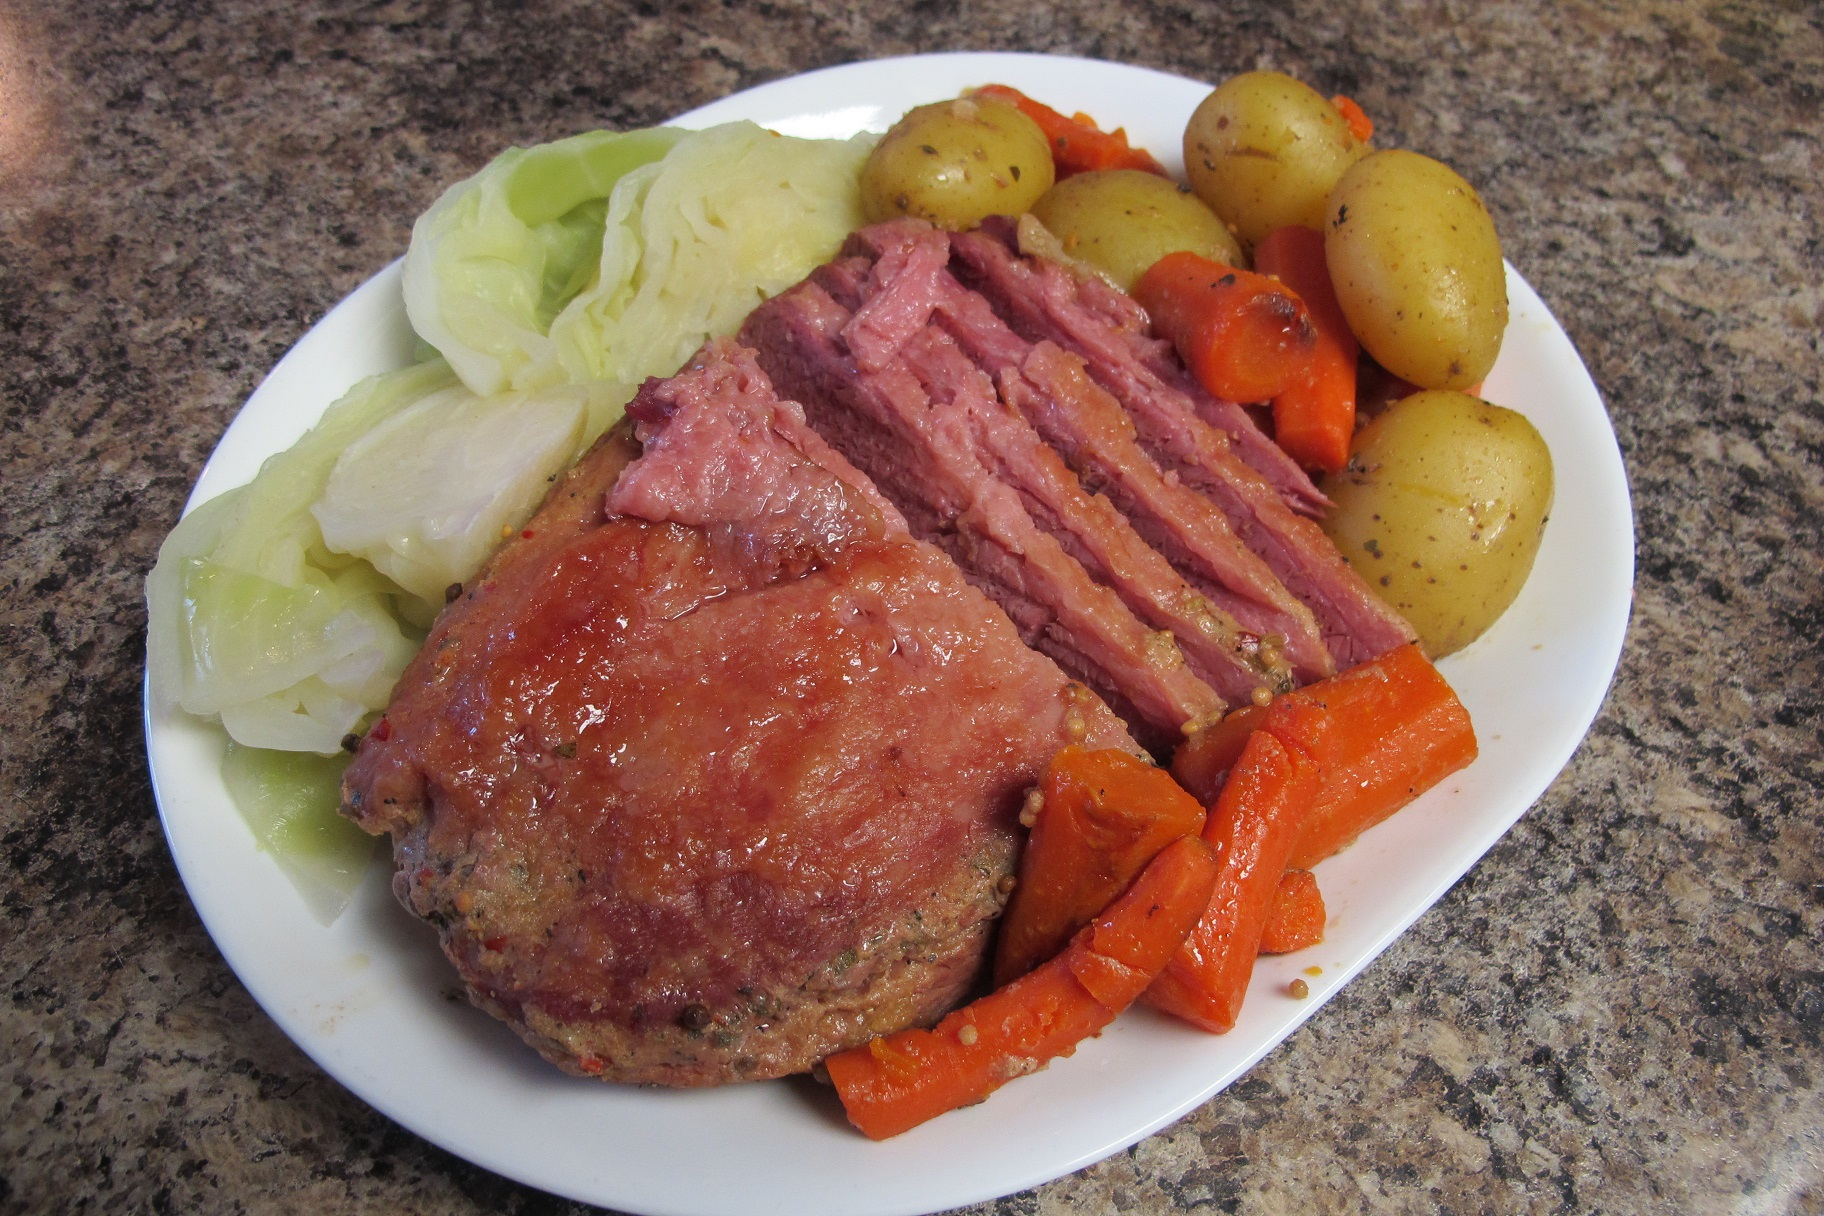 Spicy and Tender Corned Beef